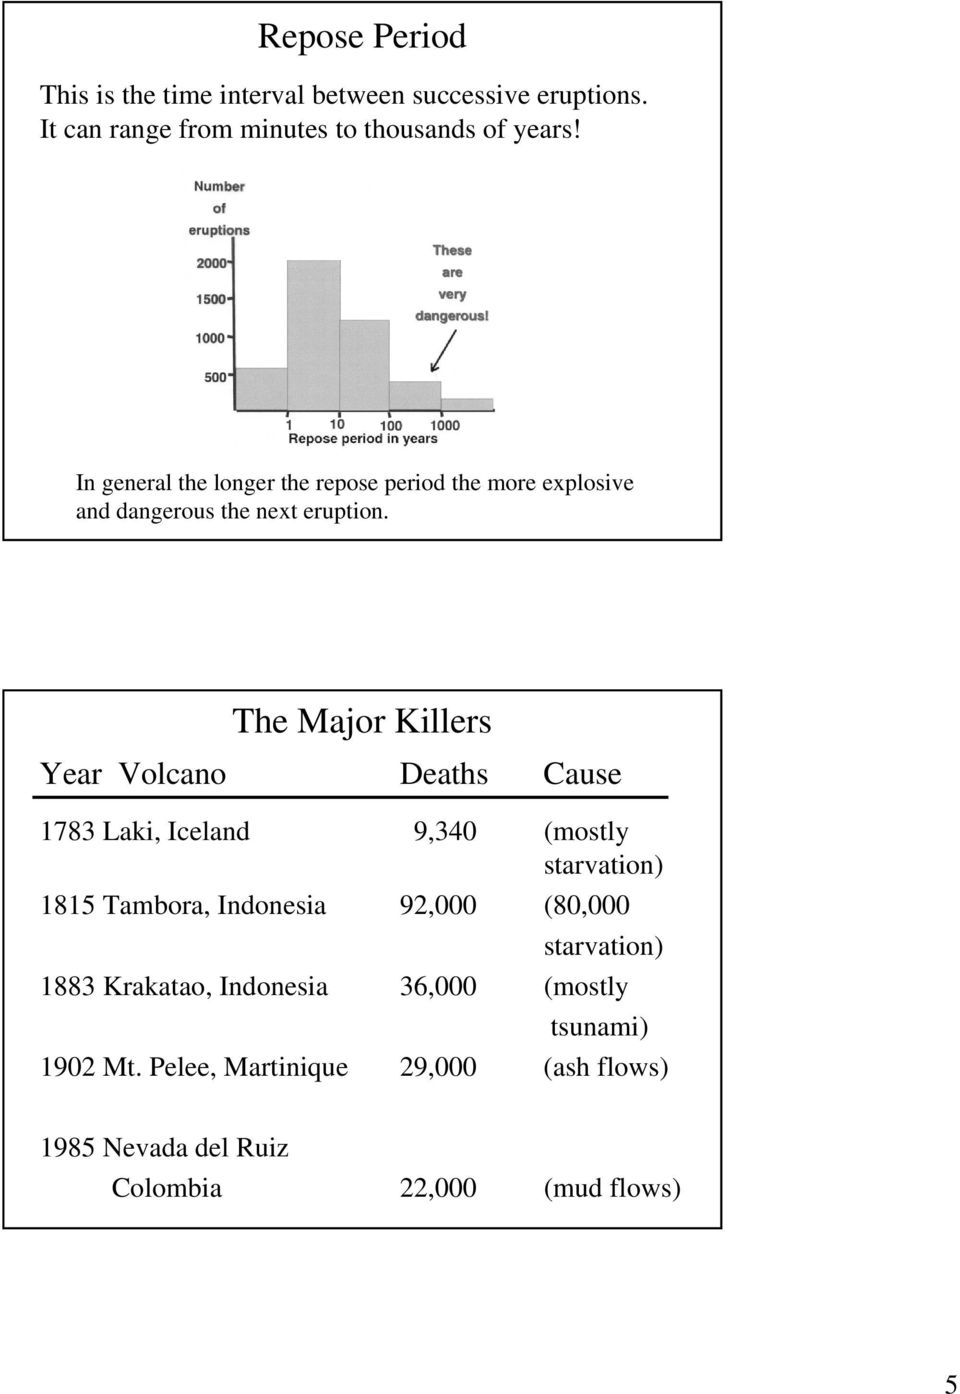 The Major Killers Year Volcano Deaths Cause 1783 Laki, Iceland 9,340 (mostly starvation) 1815 Tambora, Indonesia 92,000